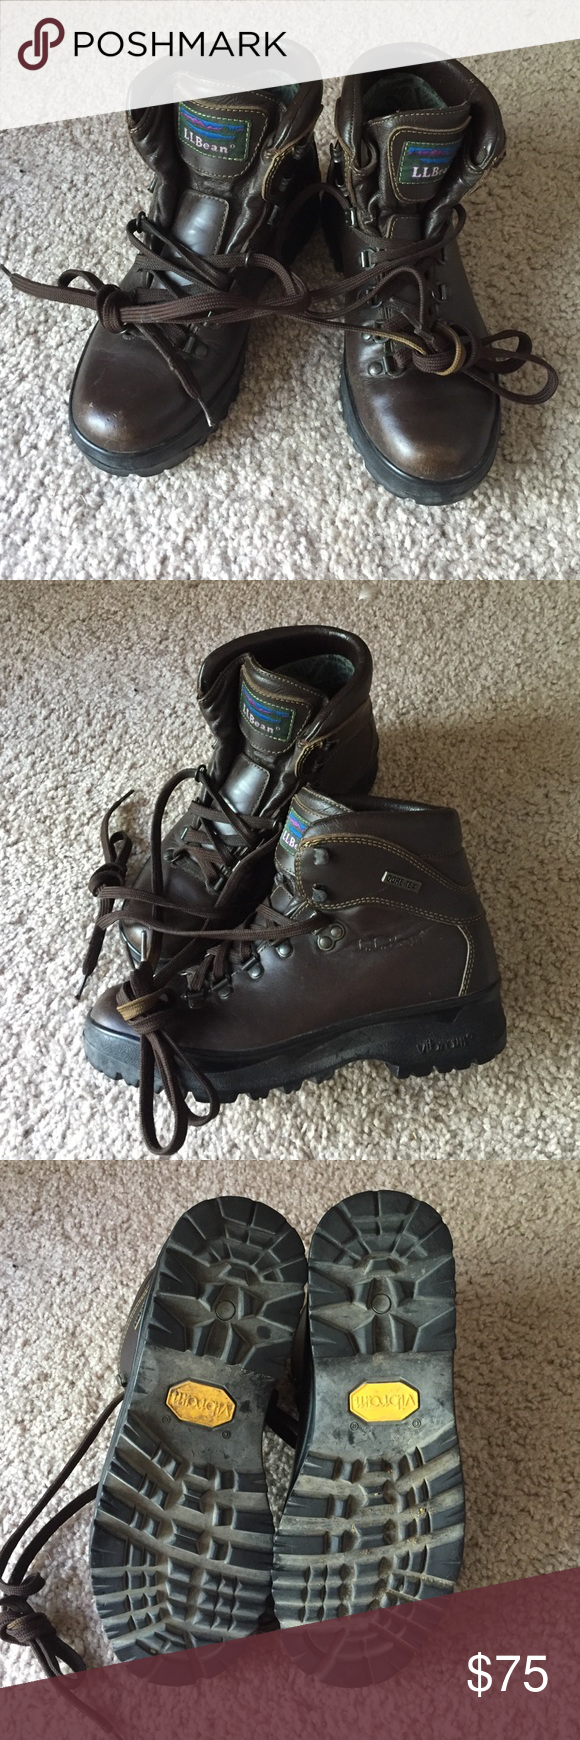 L. L. Bean hiking boots Very good condition, lots of wear left! Have two pairs and don't need both. L.L. Bean Shoes Lace Up Boots